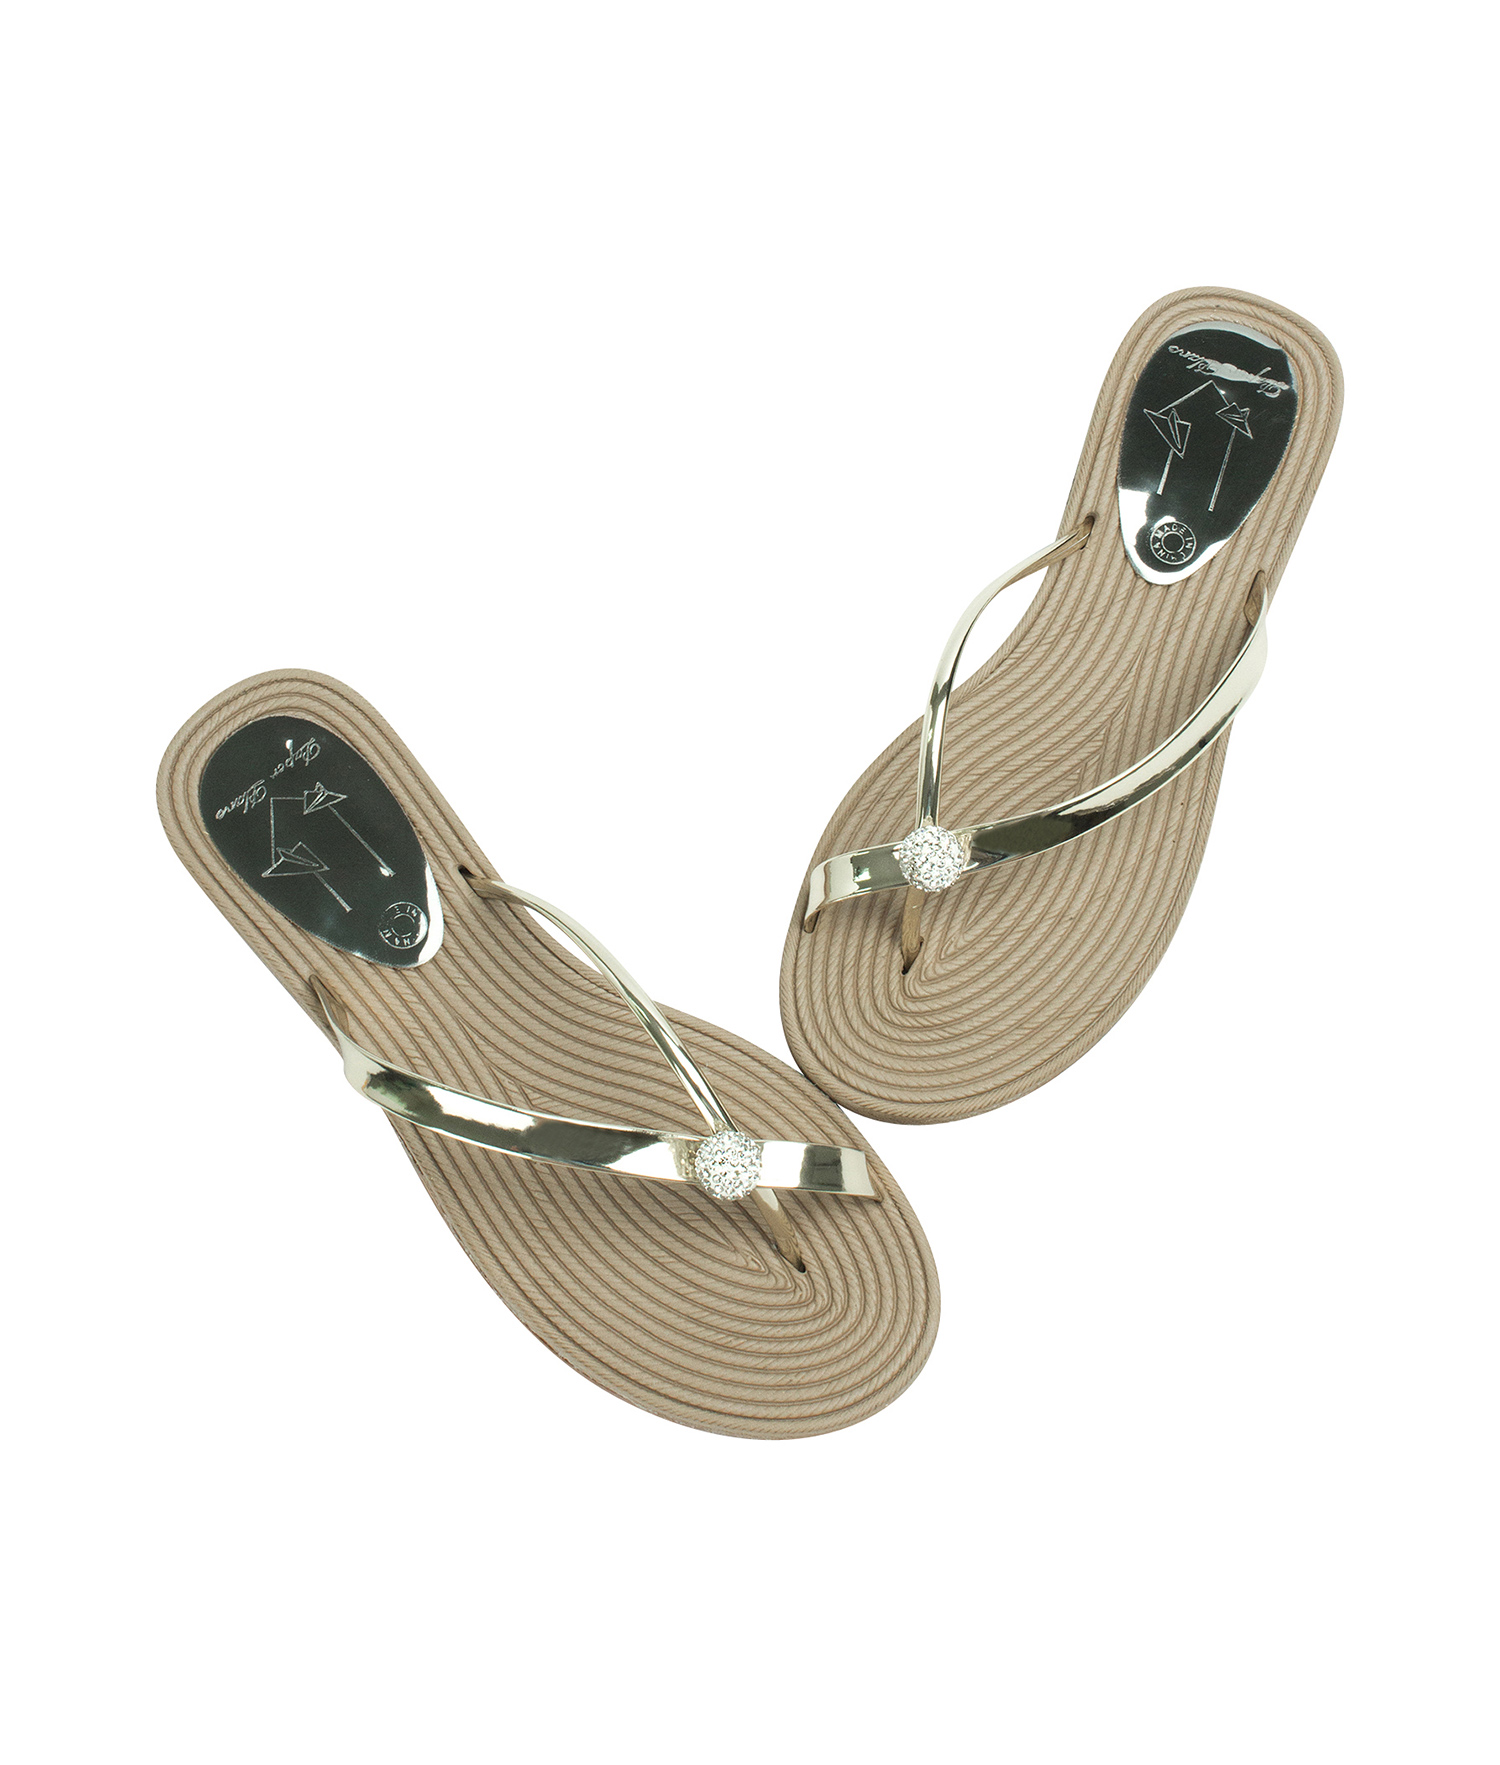 7c568a1cd AnnaKastle Womens Twinkle Toe Ring Flip Flops Gold